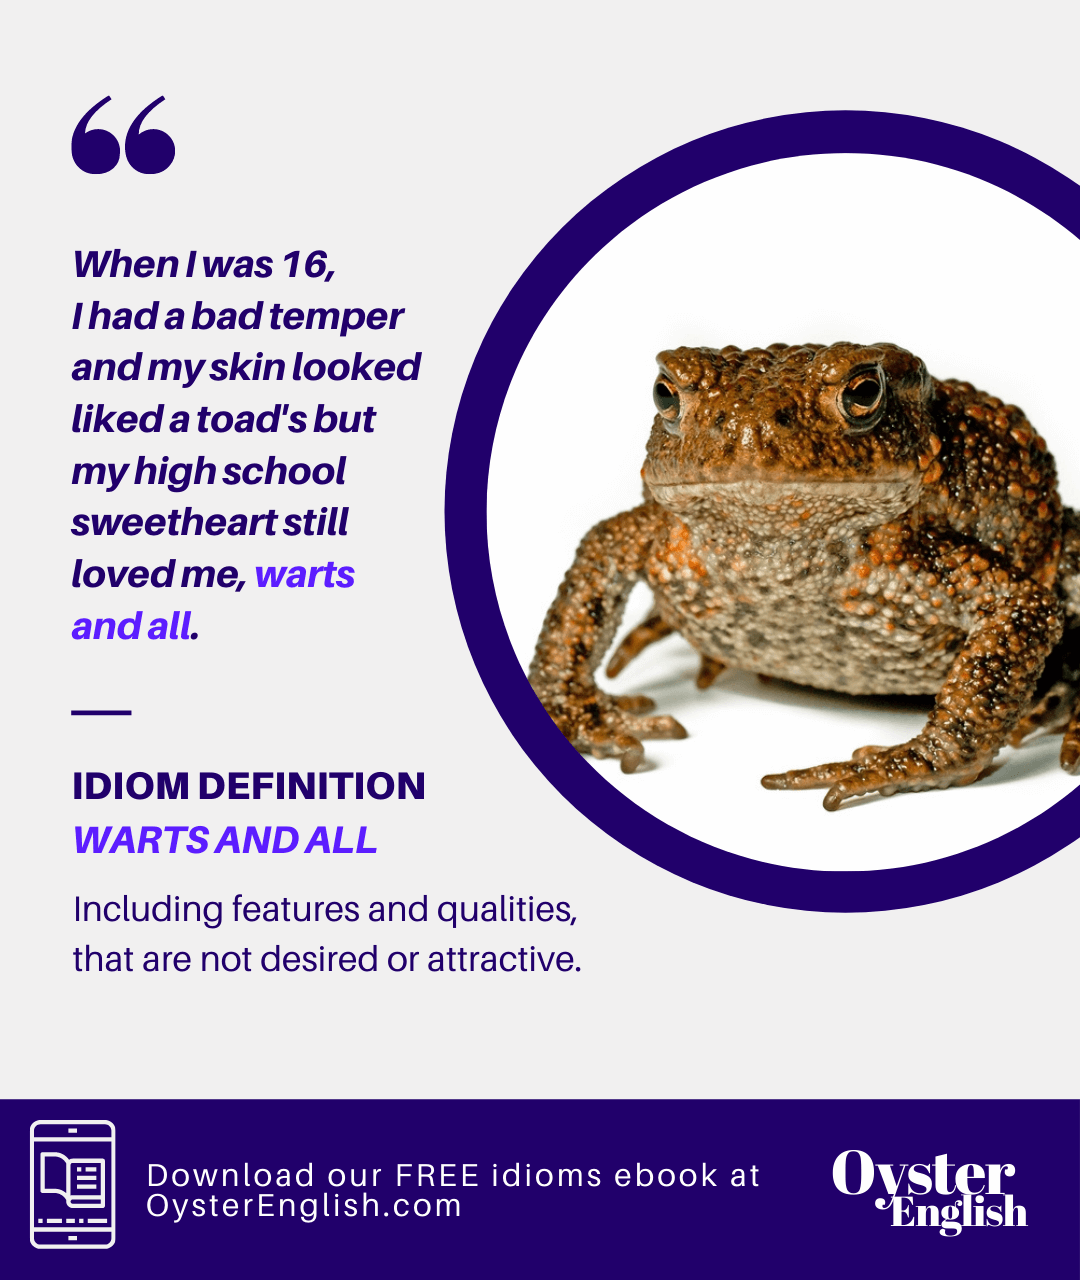 Image of a toad with many wart-like bumps on its skin. Caption: When I was 16, I had a bad temper and my skin looked like a toad's but my high school sweetheart still loved me, warts and all.